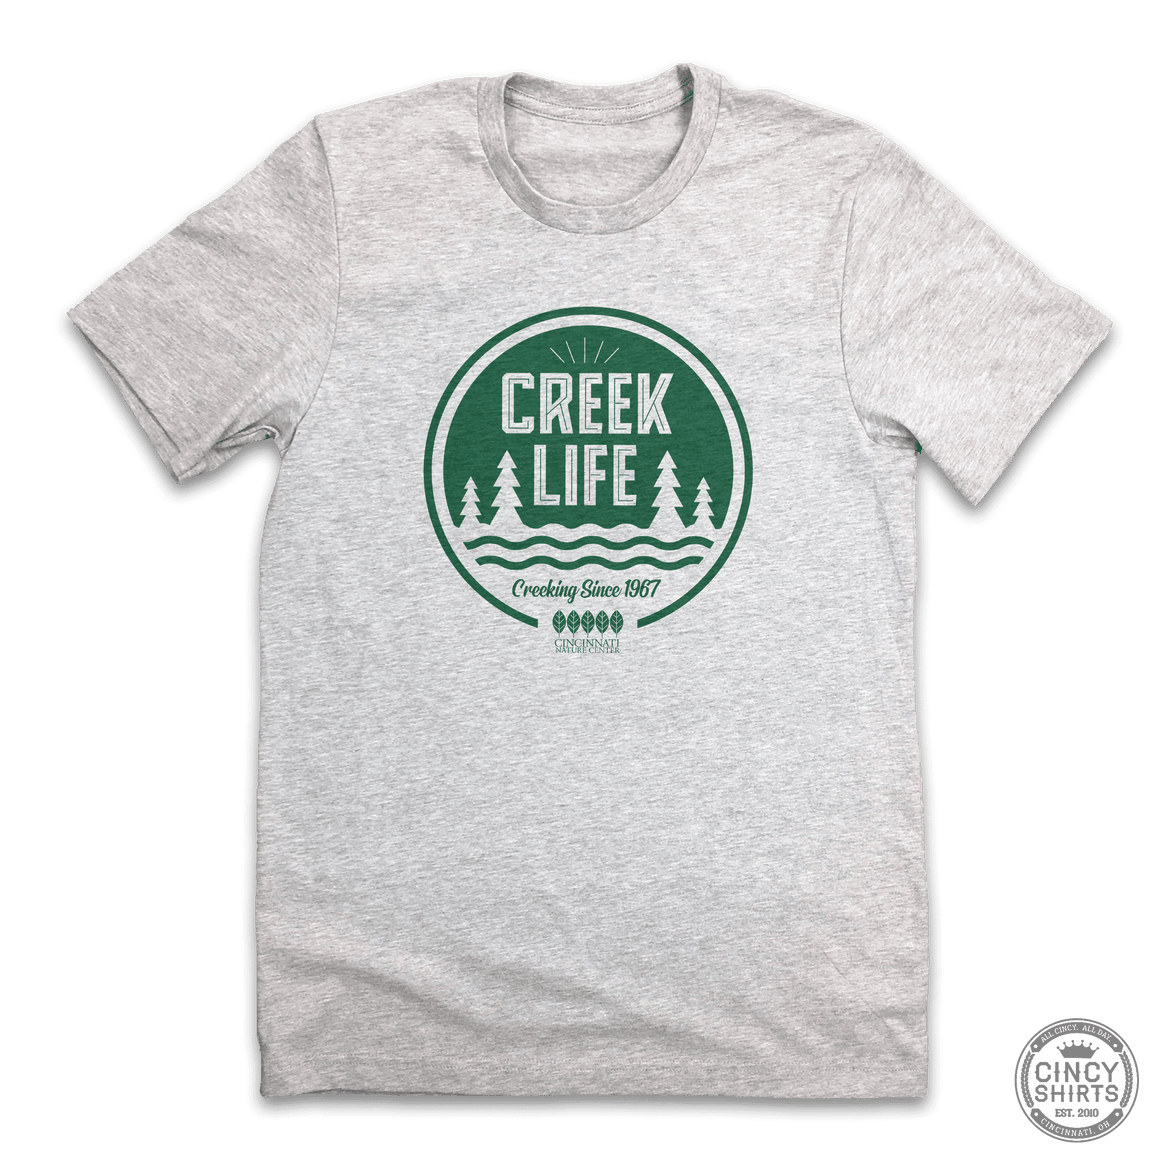 Creek Life - Cincy Shirts